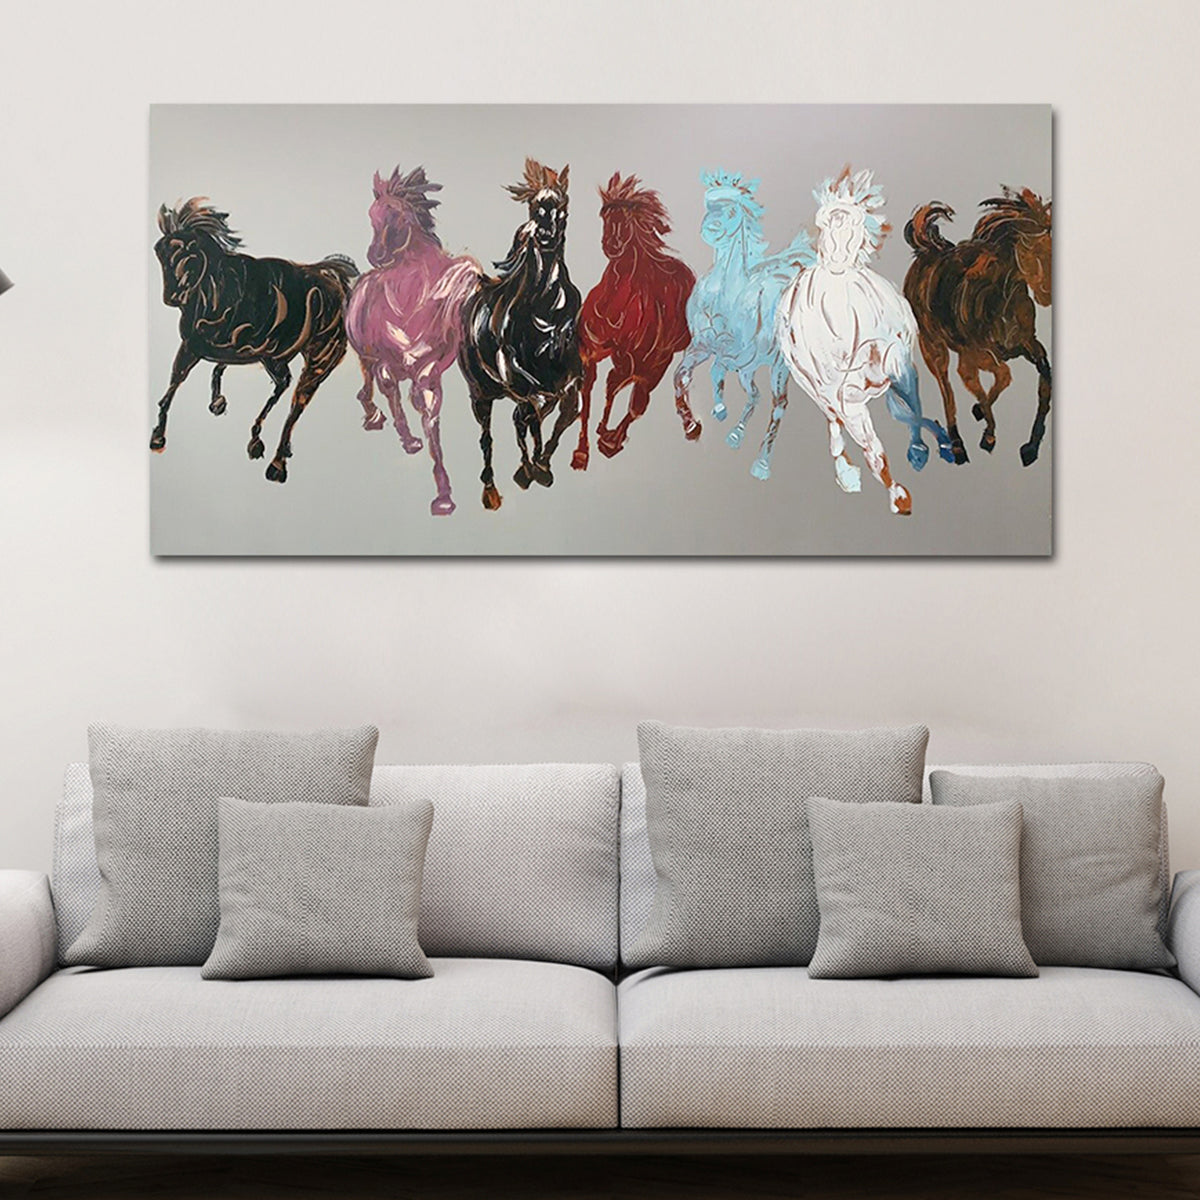 Buy Online Seven Running Horses Hand Painted Wall Painting Dekor Company